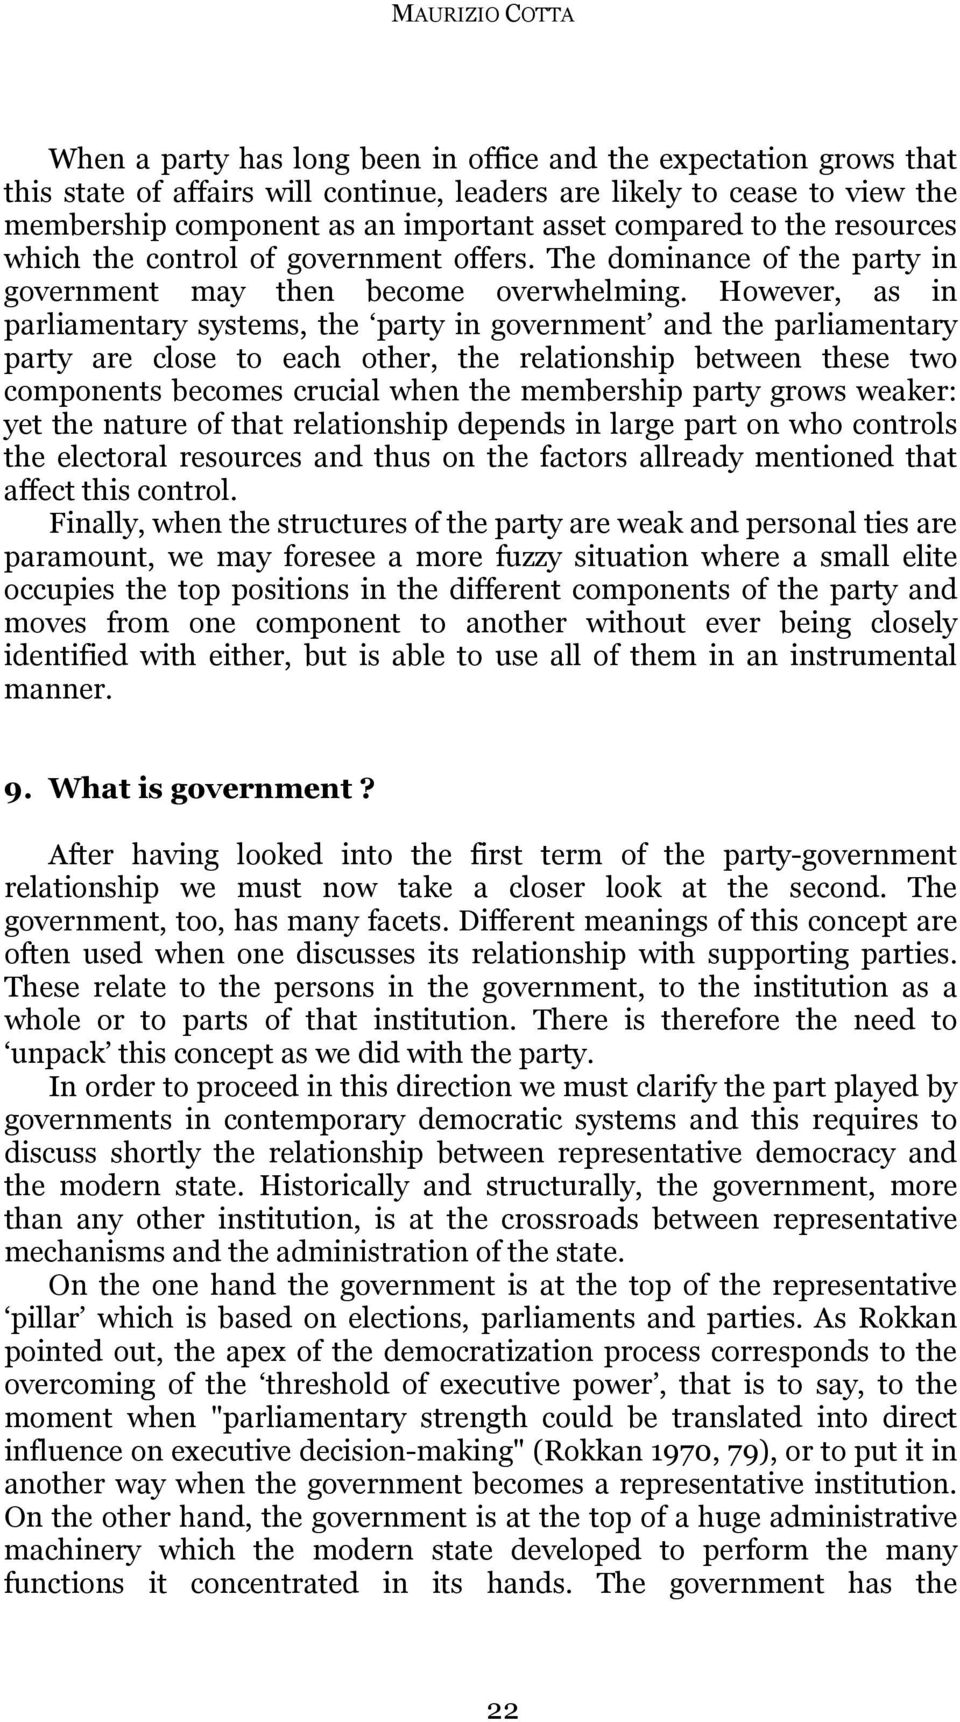 However, as in parliamentary systems, the party in government and the parliamentary party are close to each other, the relationship between these two components becomes crucial when the membership